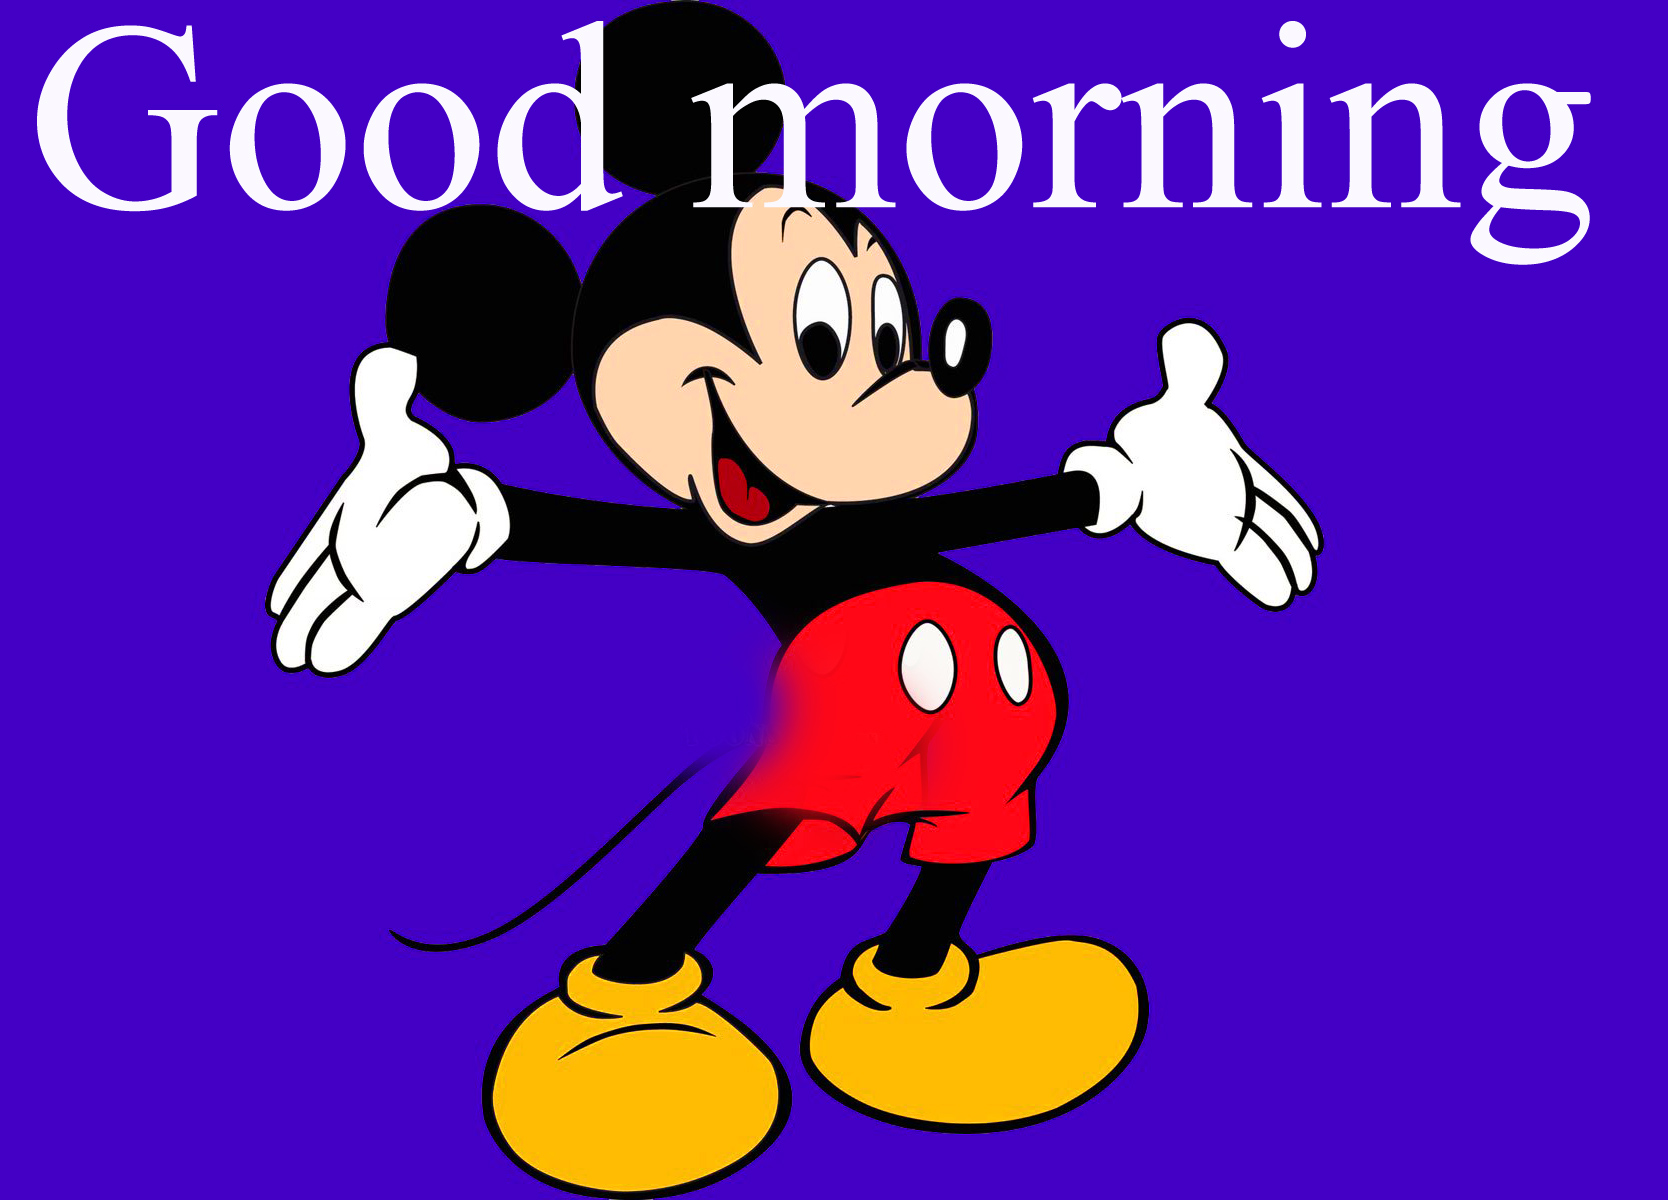 Good morning  wishes with mickey Photo Wallpaper Images HD Download